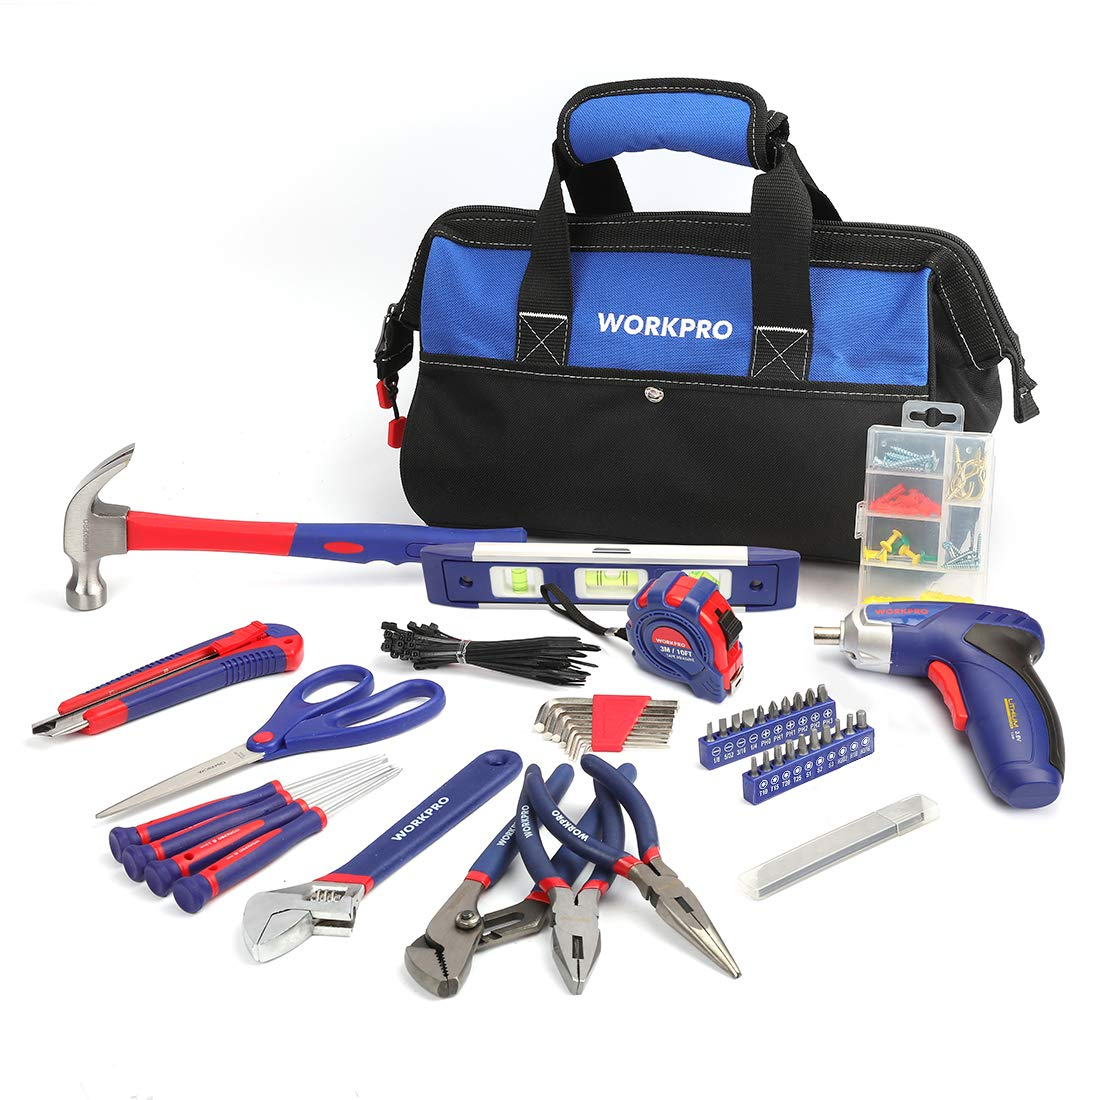 WORKPRO 125-piece Tool Kit - Home Repairing Set with 3.6V Rechargeable Screwdriver and Tool Bag by WORKPRO